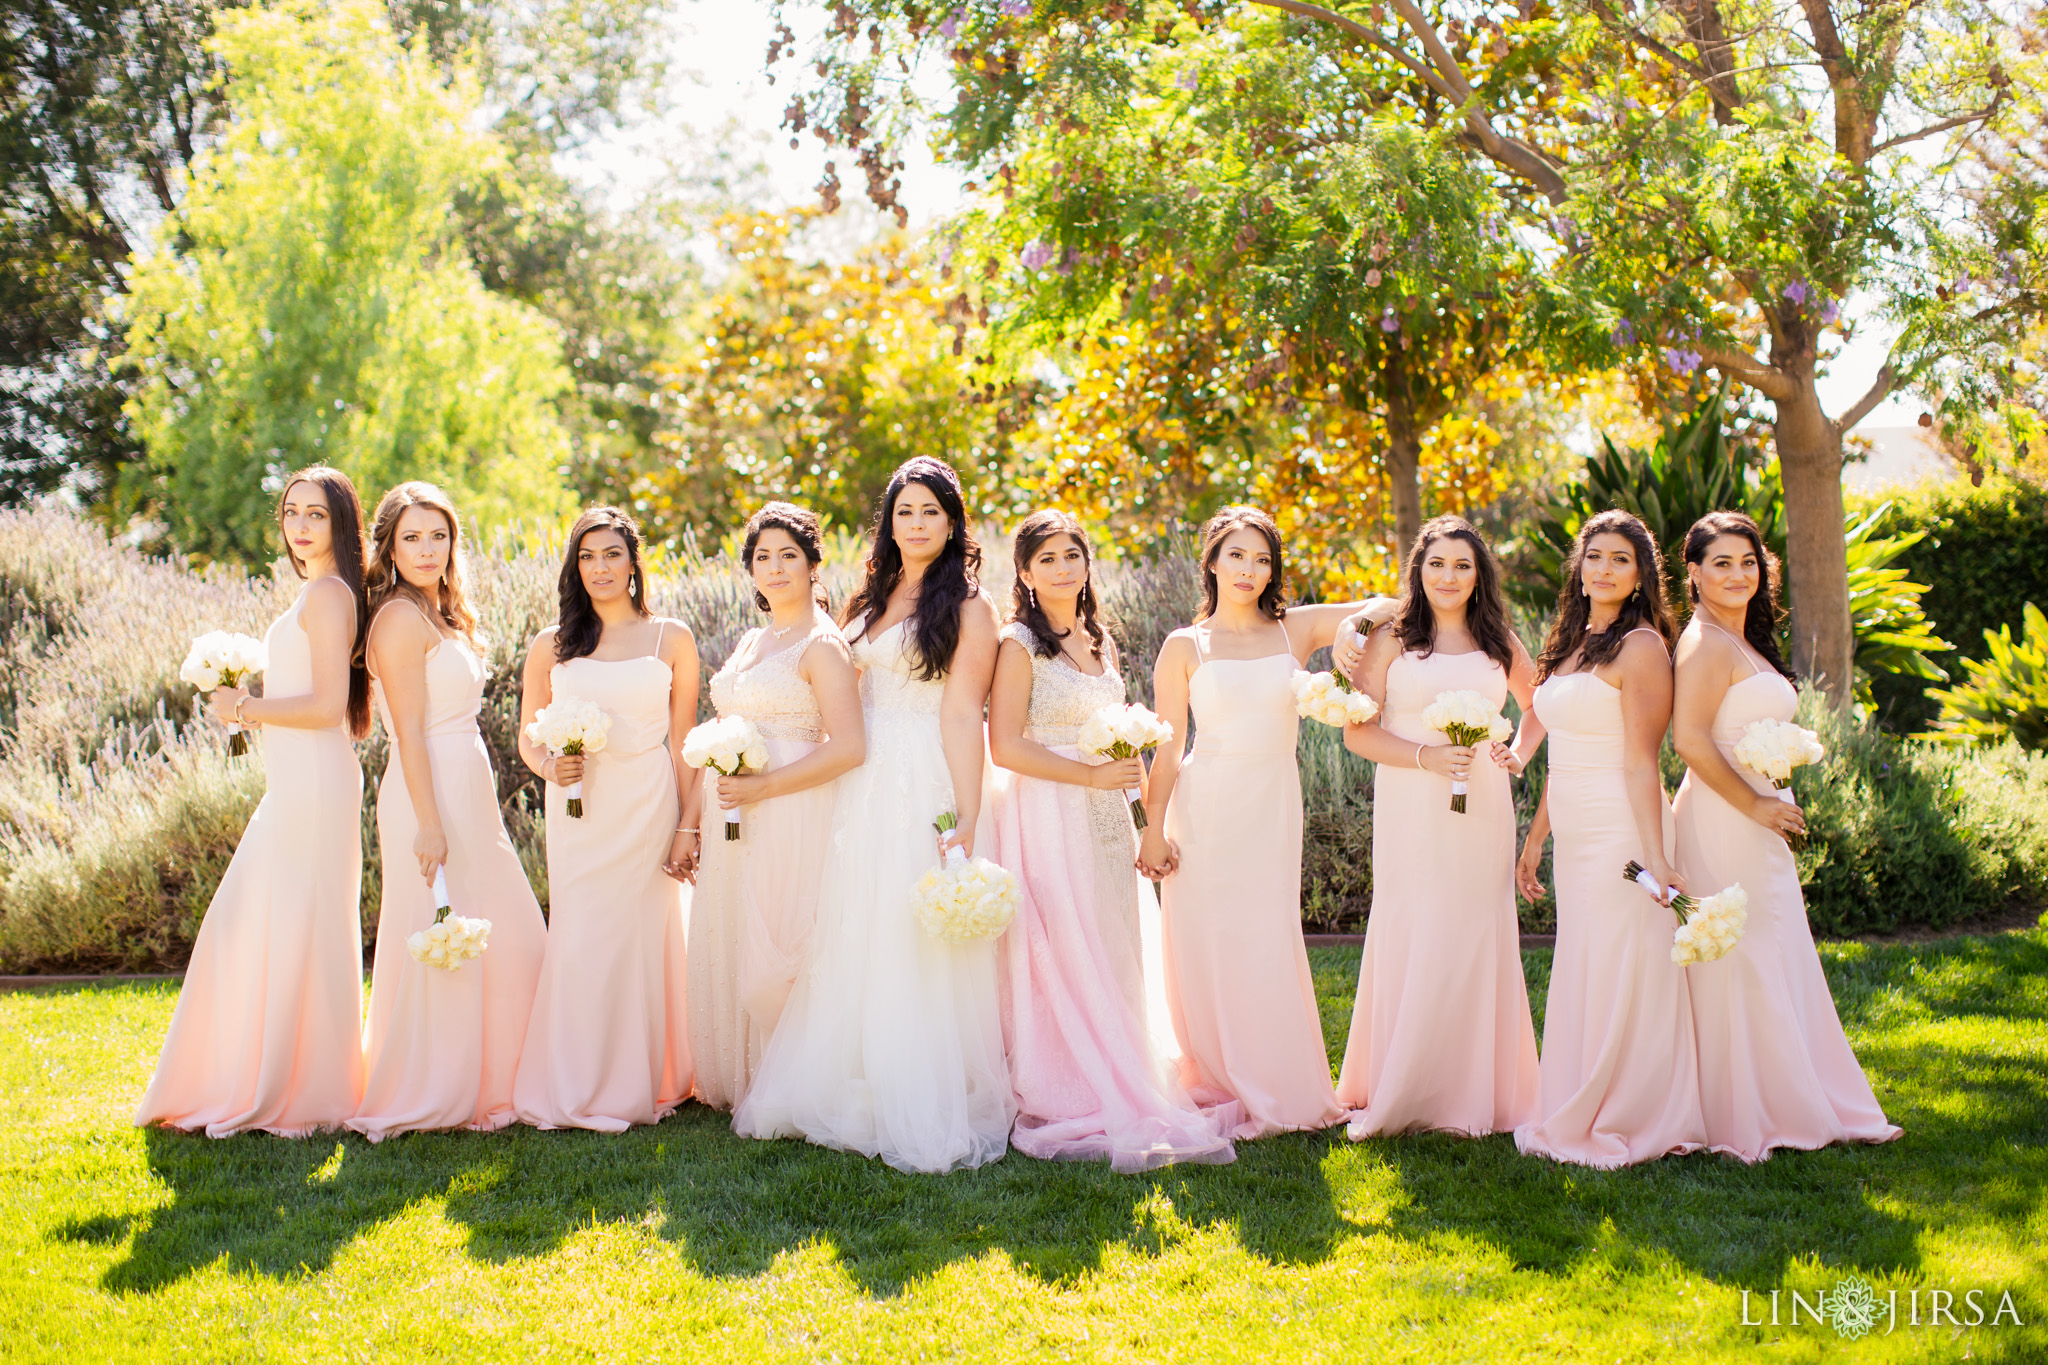 07 four seasons westlake village wedding photography